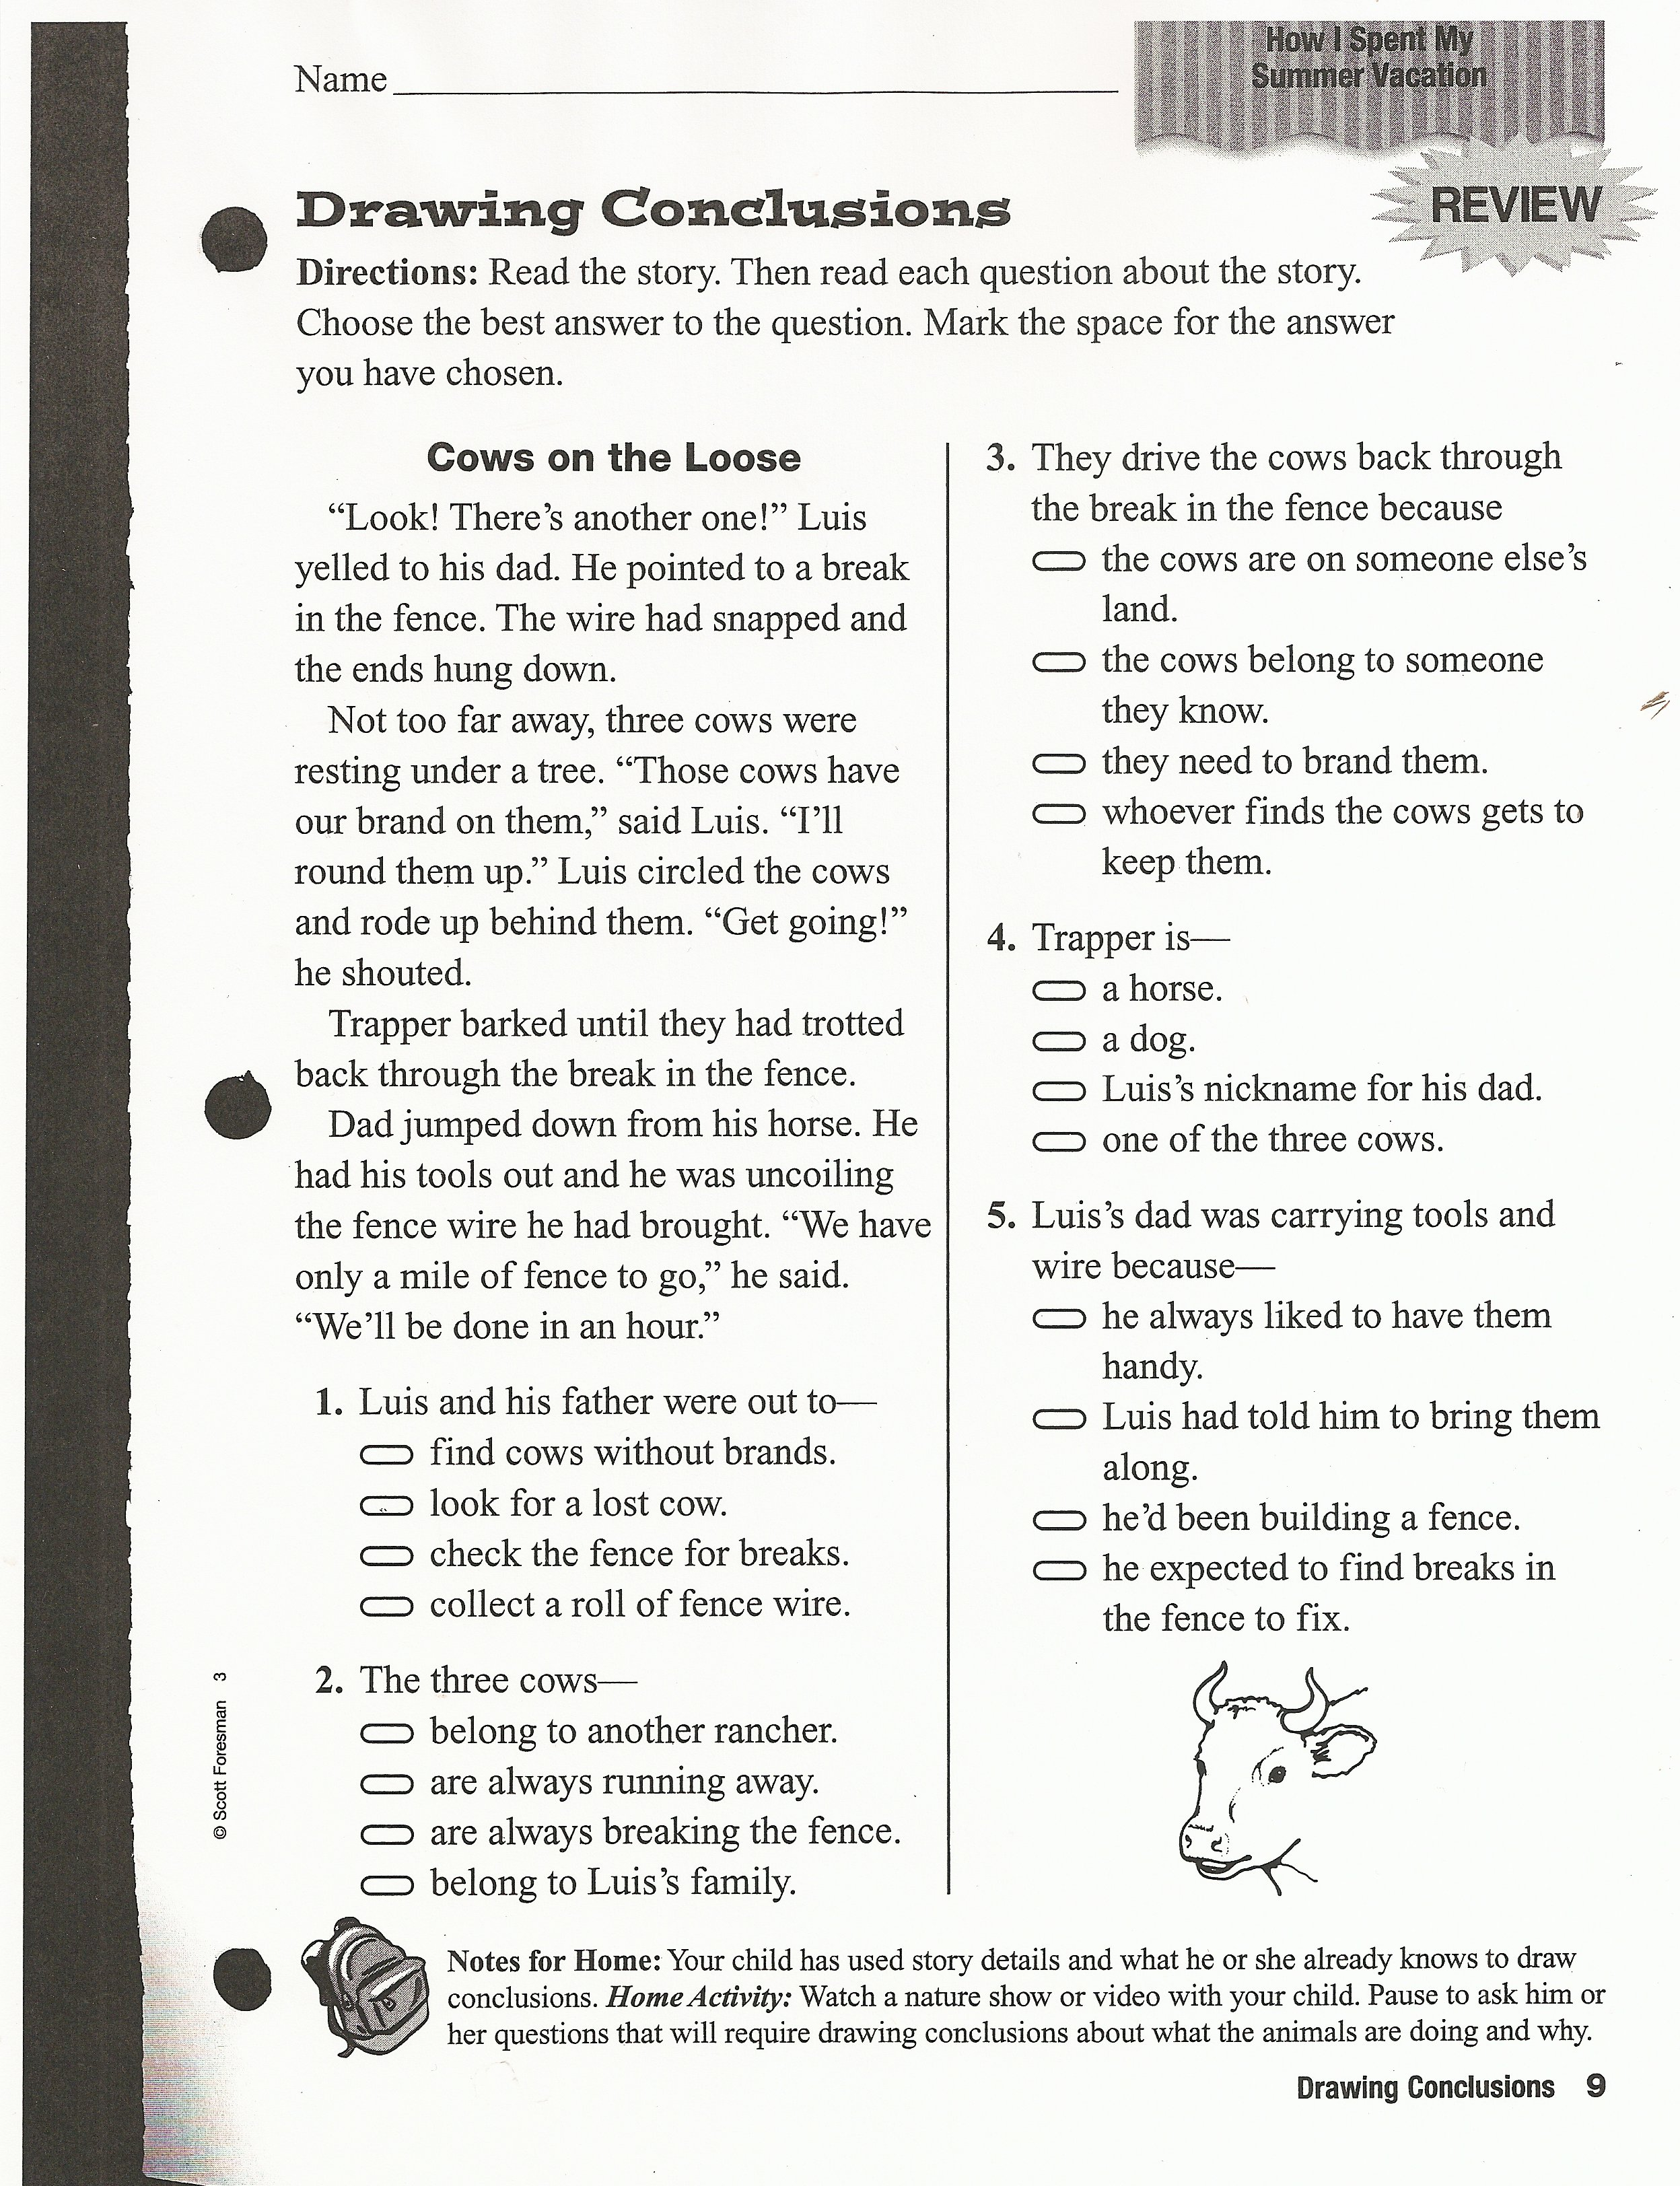 Reading Worksheet 3rd Grade with Mrs Davis – Reading Worksheets for 3rd Grade